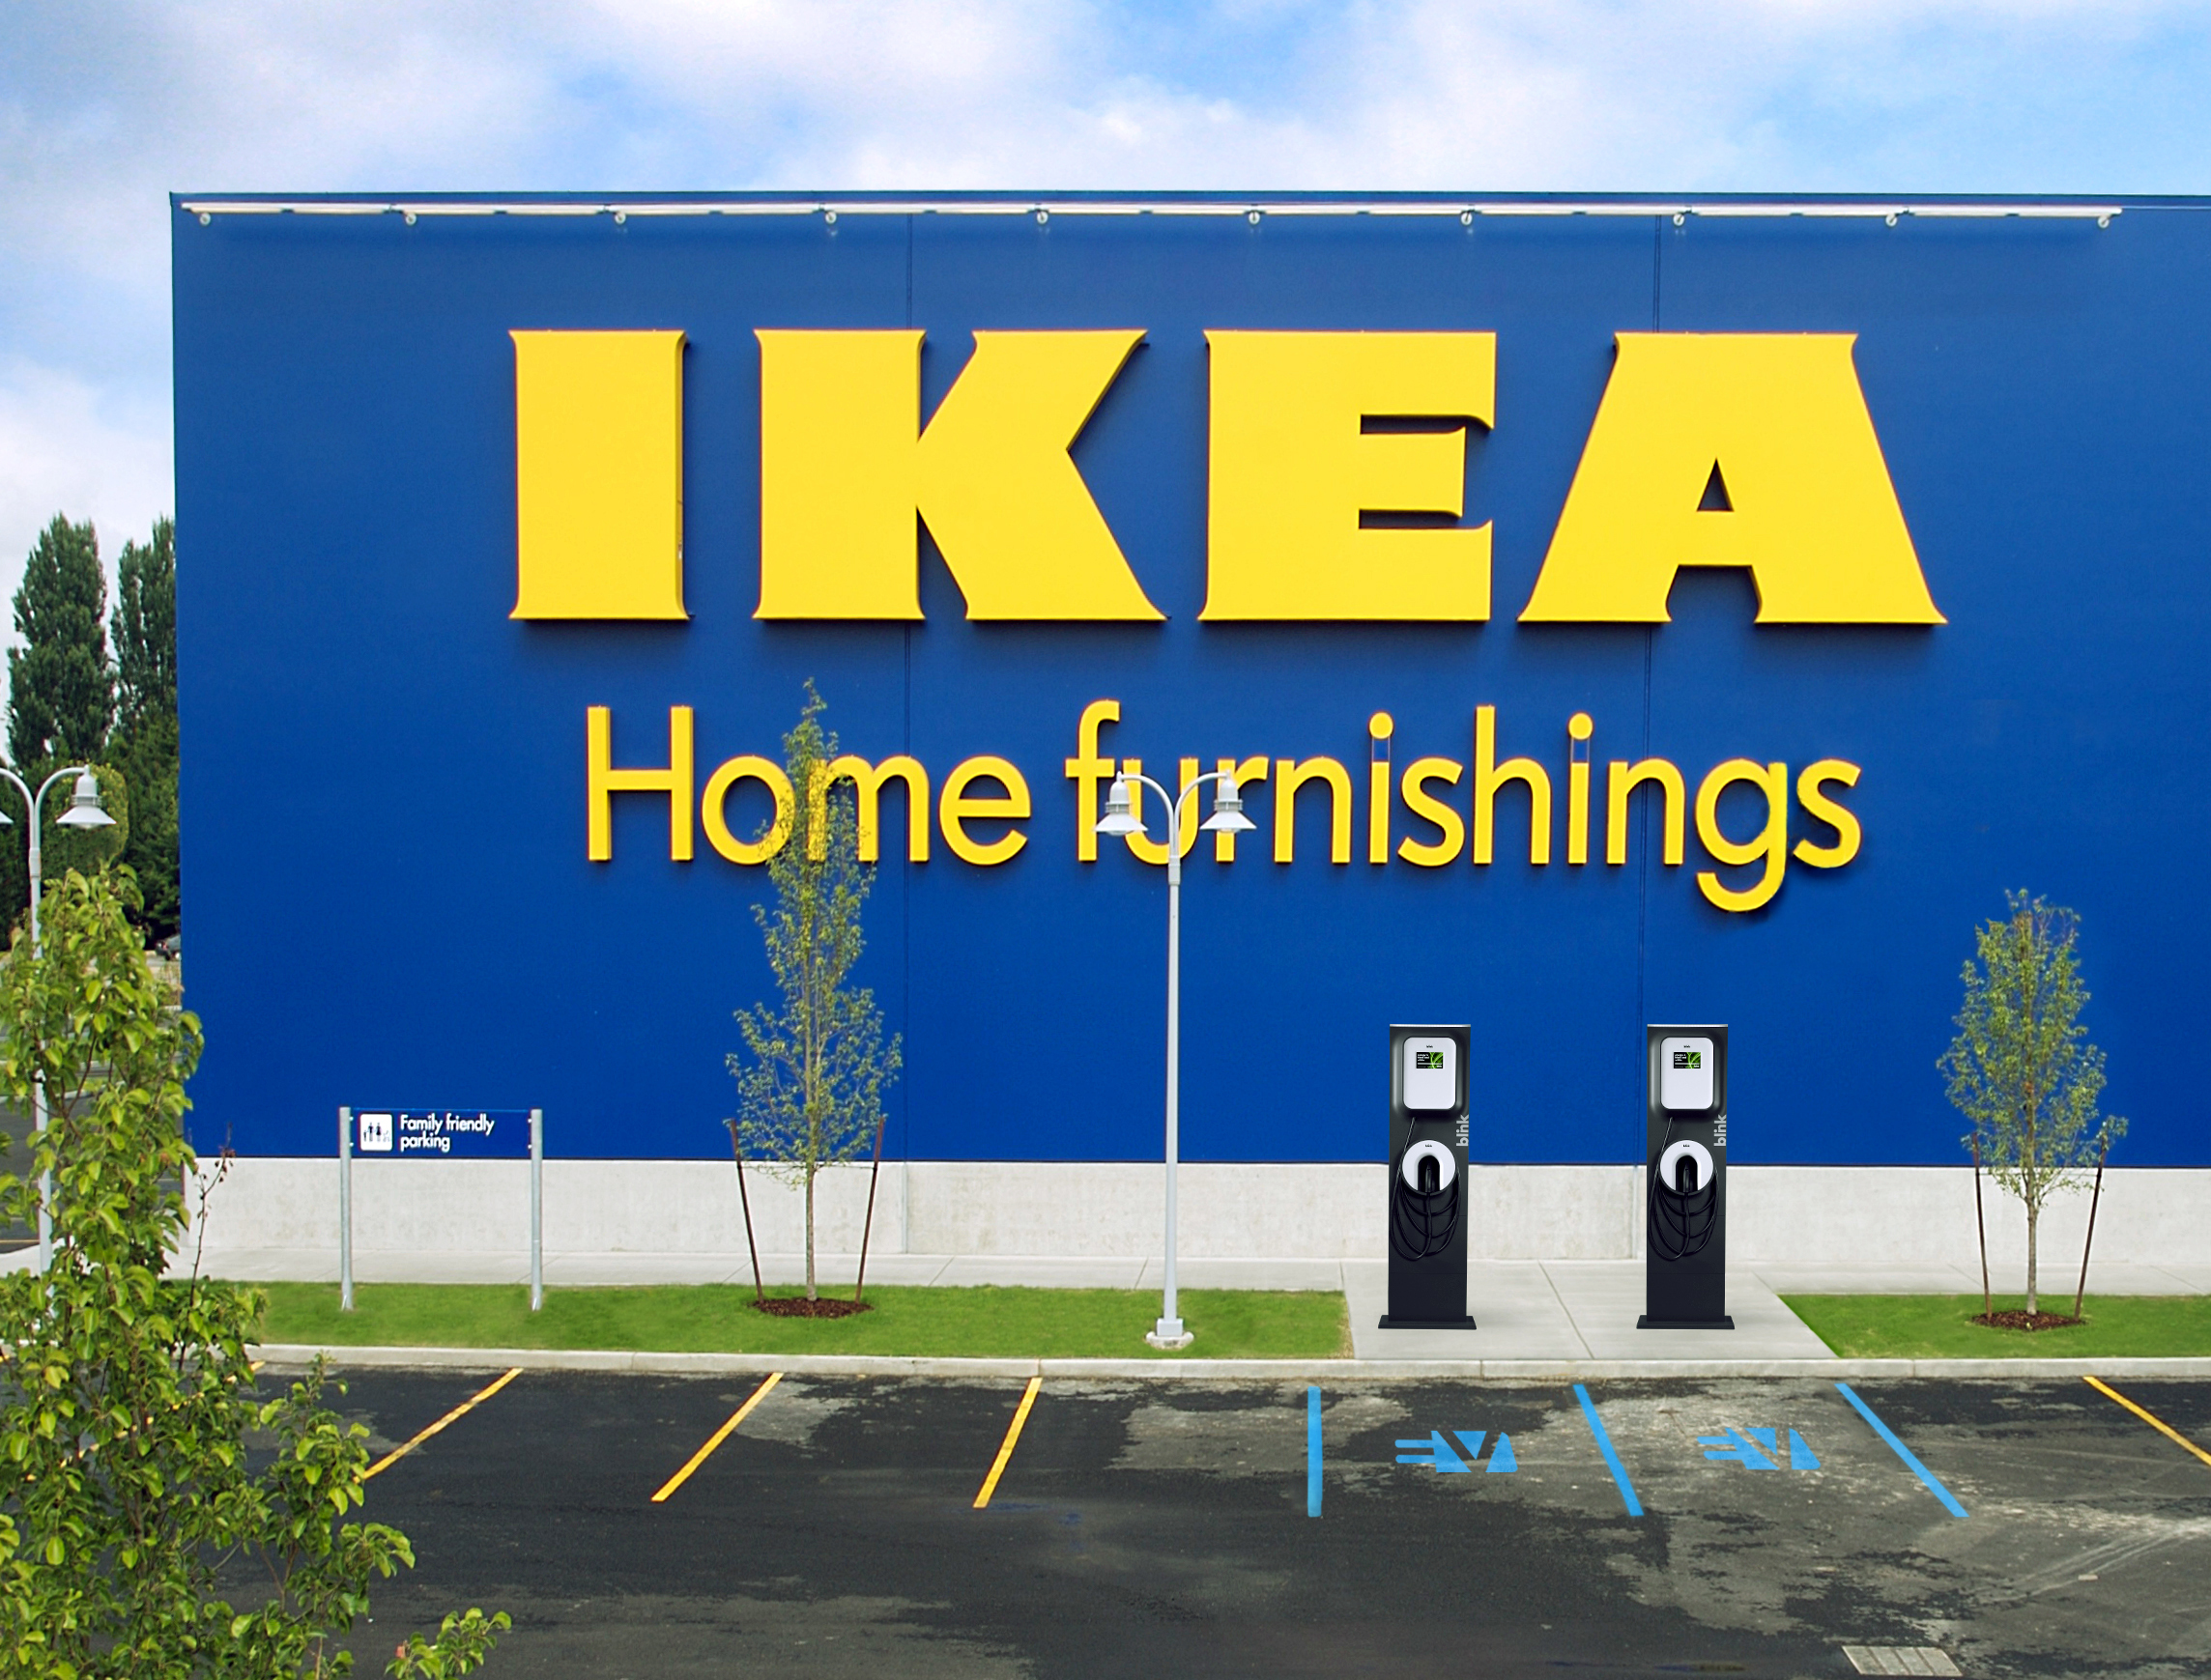 Ikea To Grow Presence Of Electric Vehicle Charging Stations With